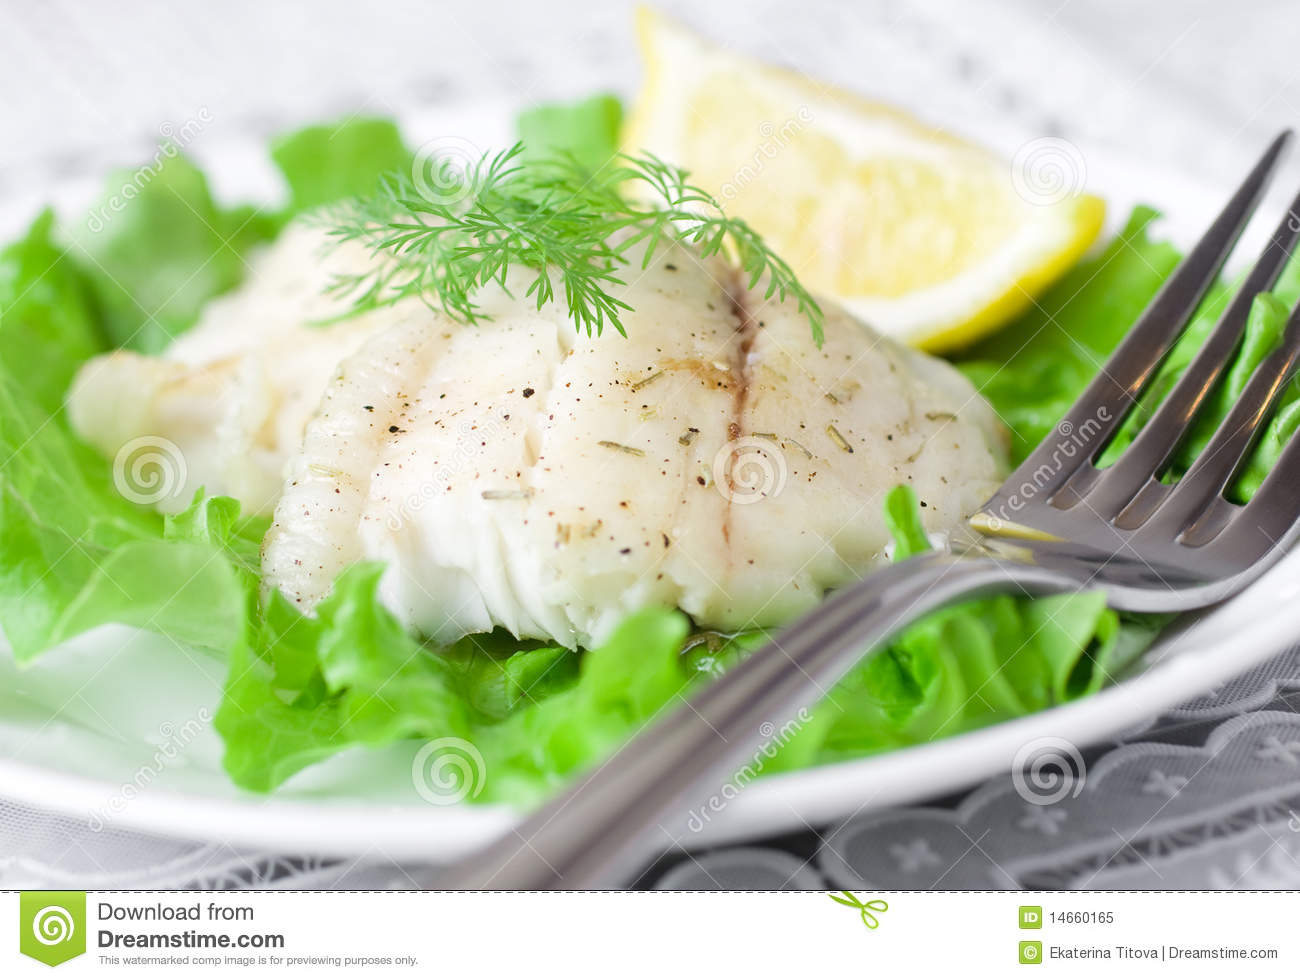 Baked white fish royalty free stock photo image 14660165 for Baked white fish